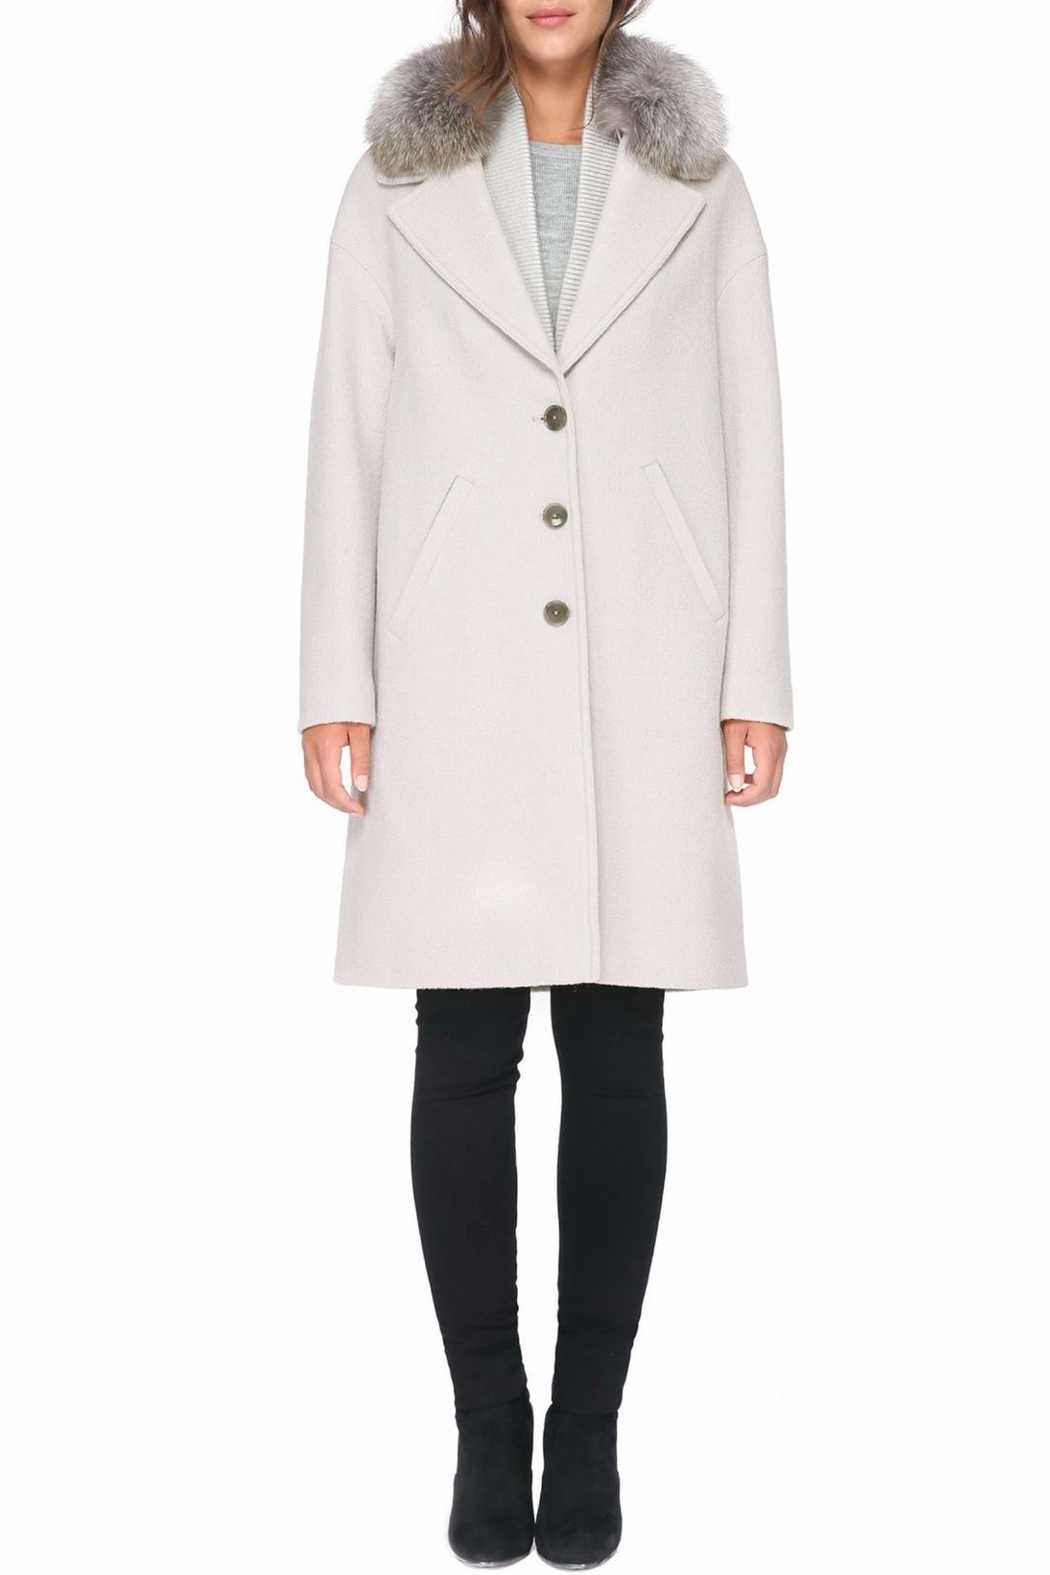 Soia & Kyo Christelle Fx Wool Coat - Main Image